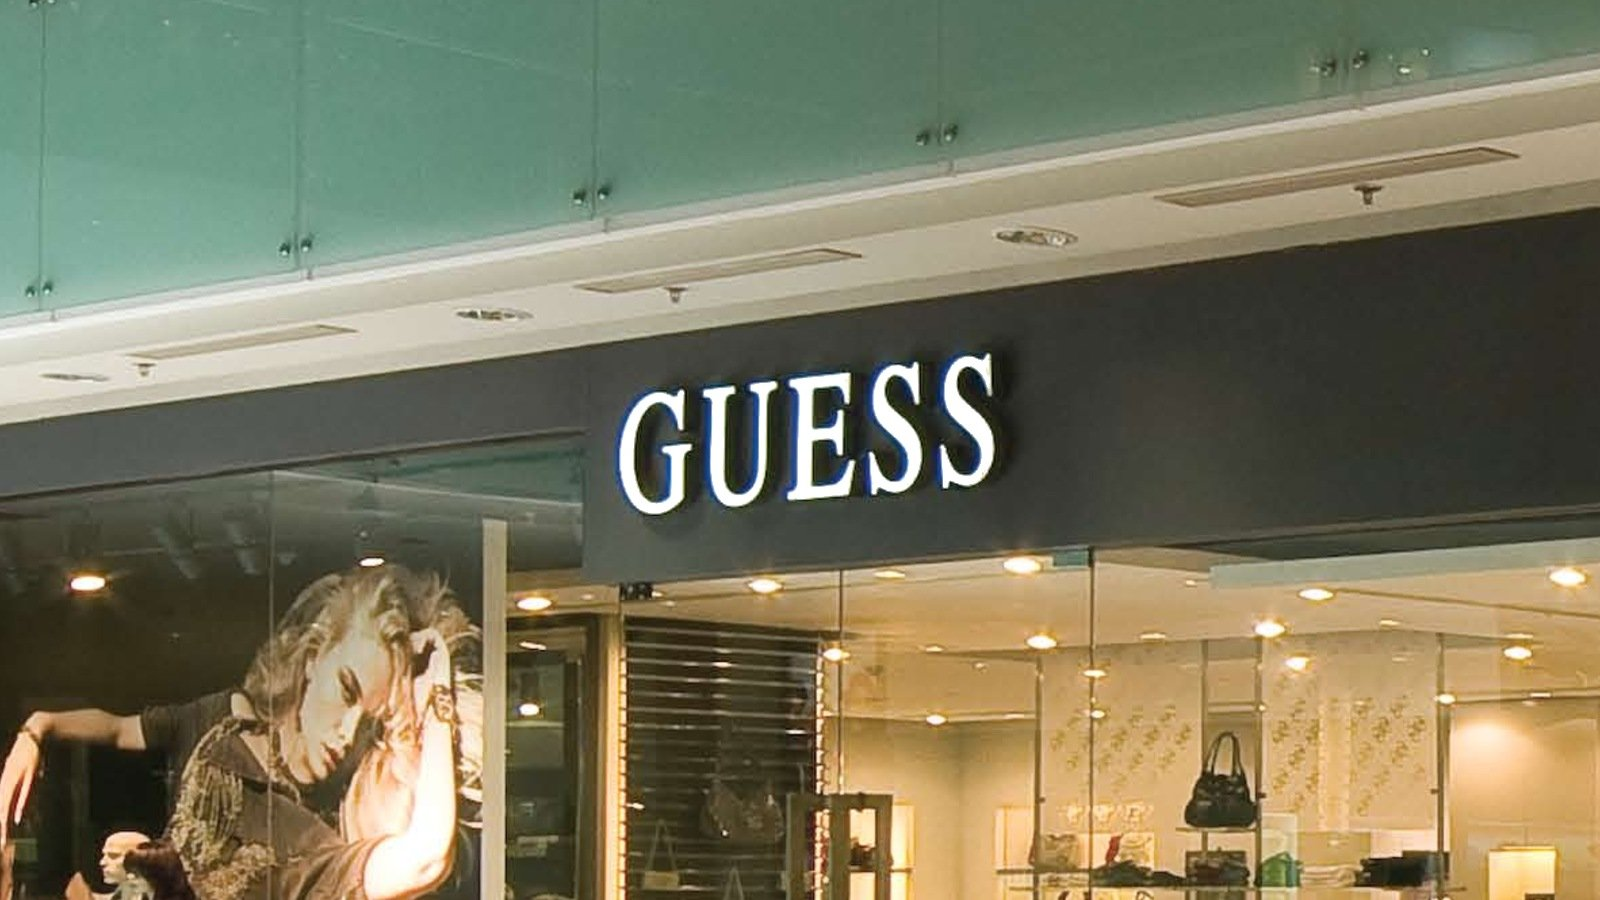 Fashion retailer Guess discloses data breach after ransomware attack